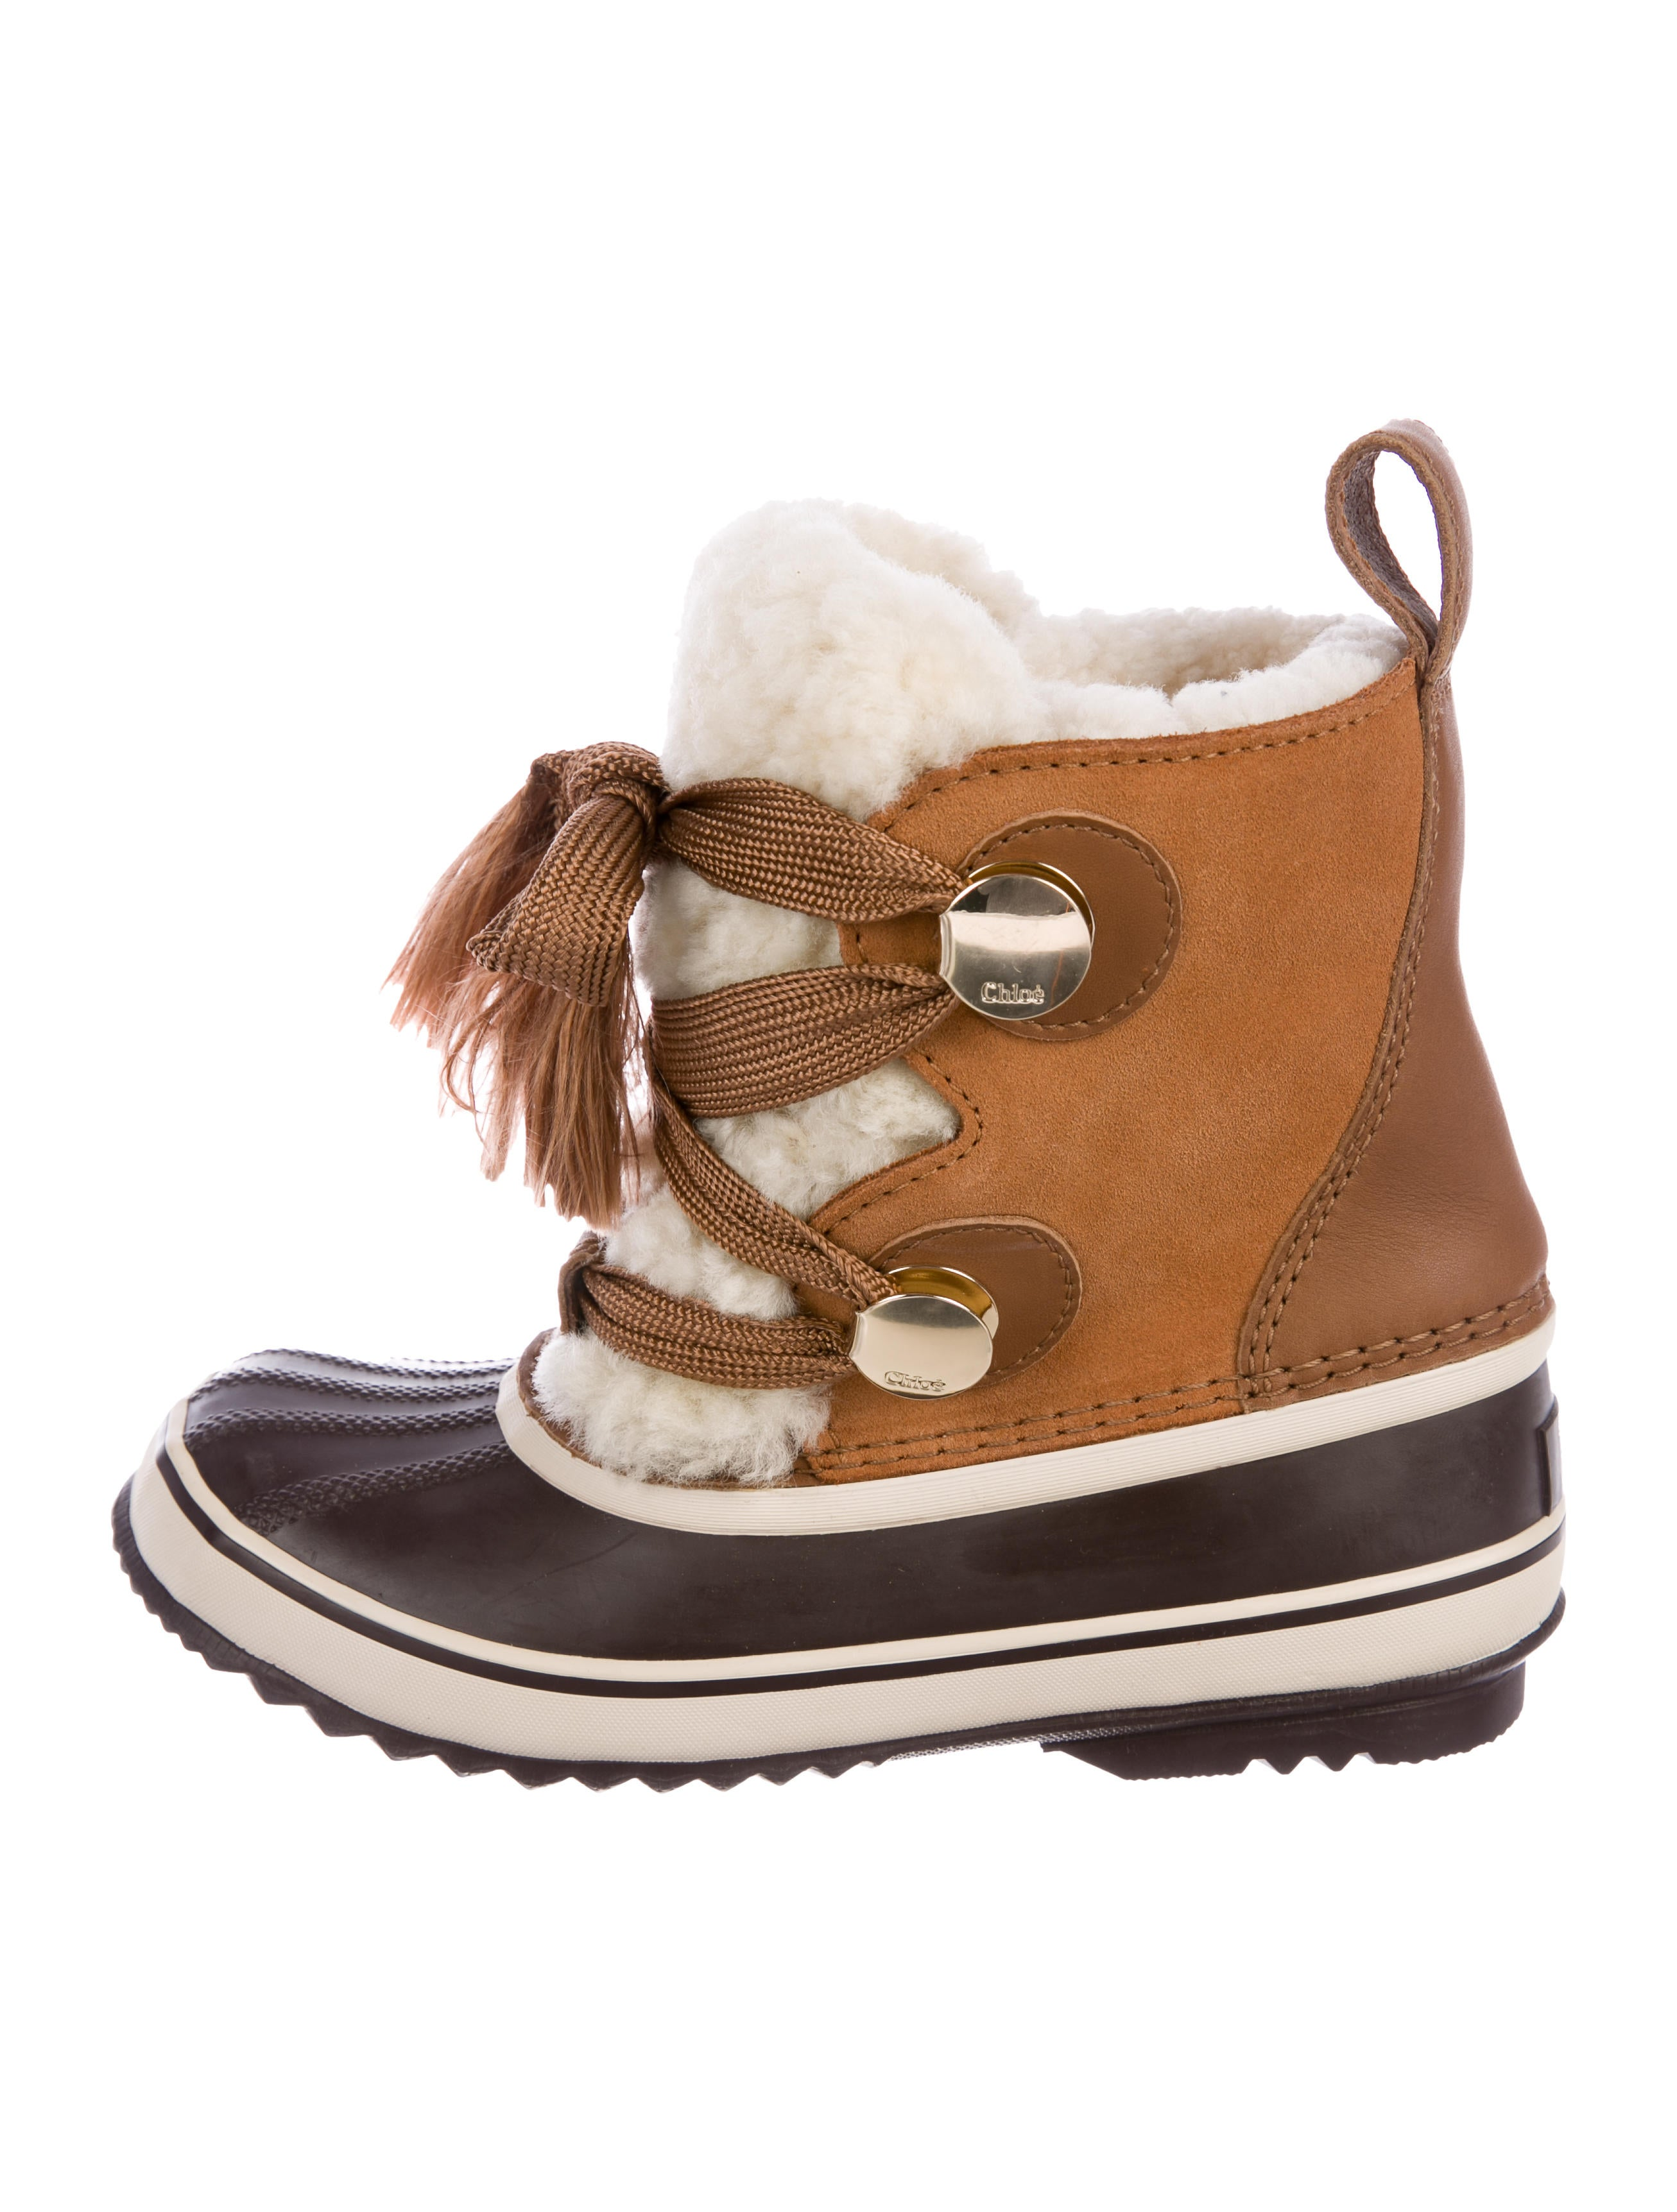 SOREL x Chloé 2018 Shearling-Trimmed Ankle Boots get authentic online enjoy cheap price AmMoQ8pX